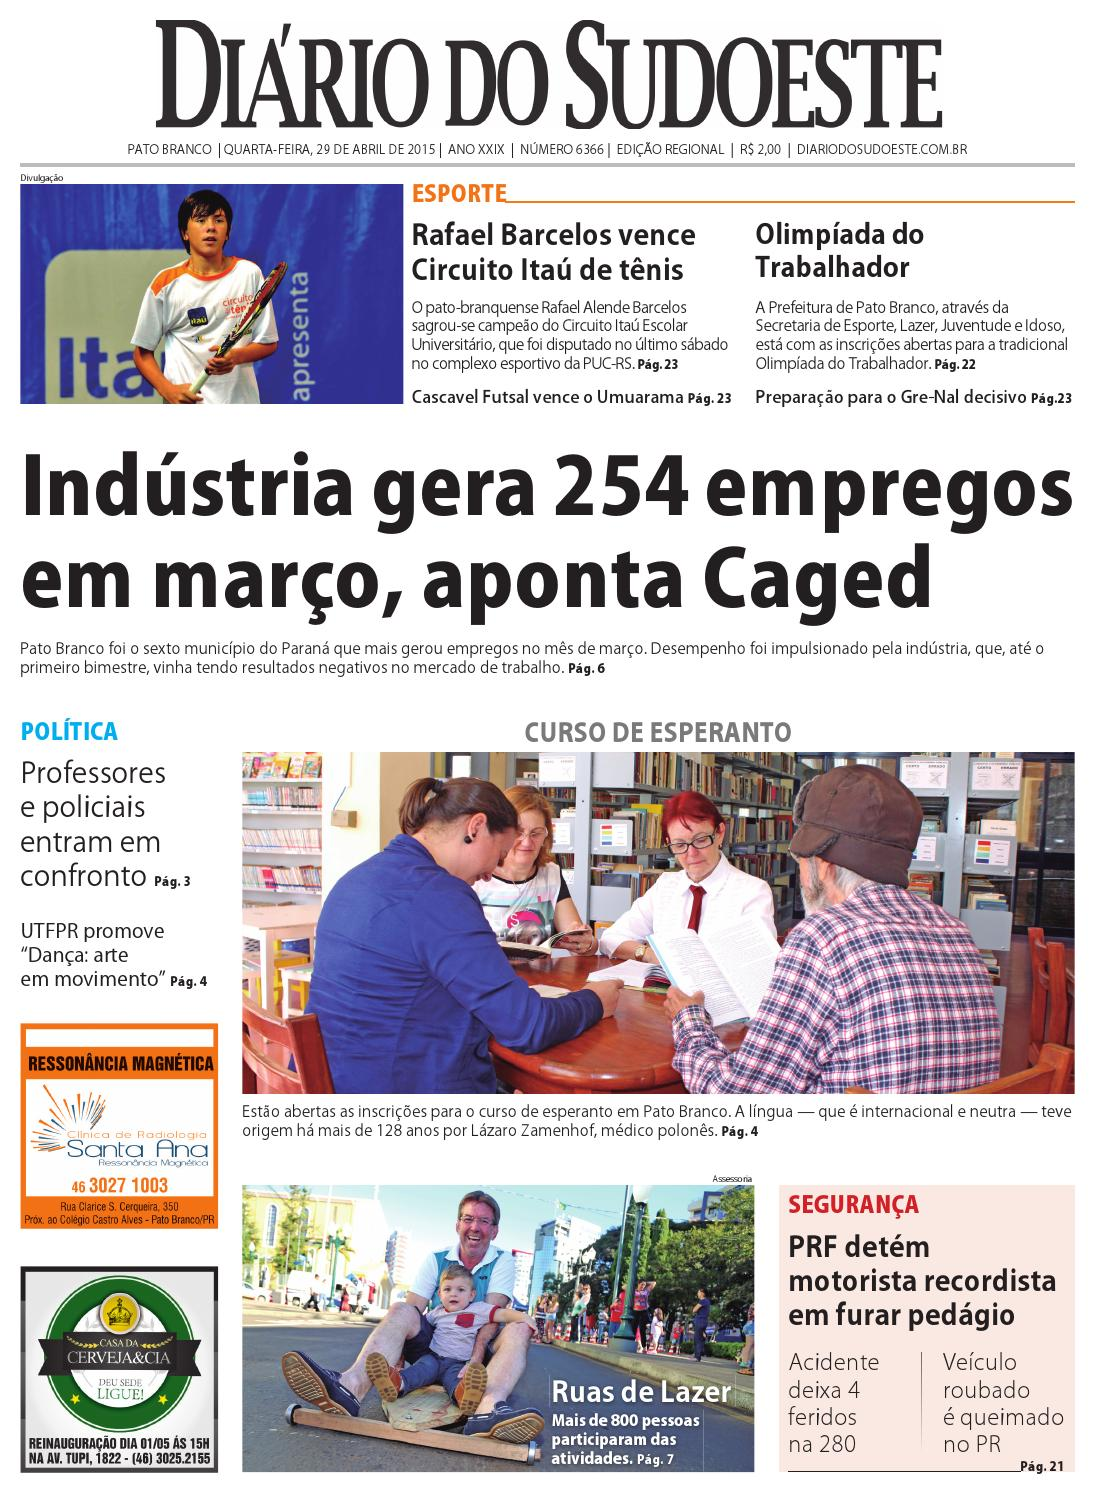 9ae4e66e74 Diario do sudoeste 29 de abril de 2015 ed 6366 indd by Diário do Sudoeste -  issuu